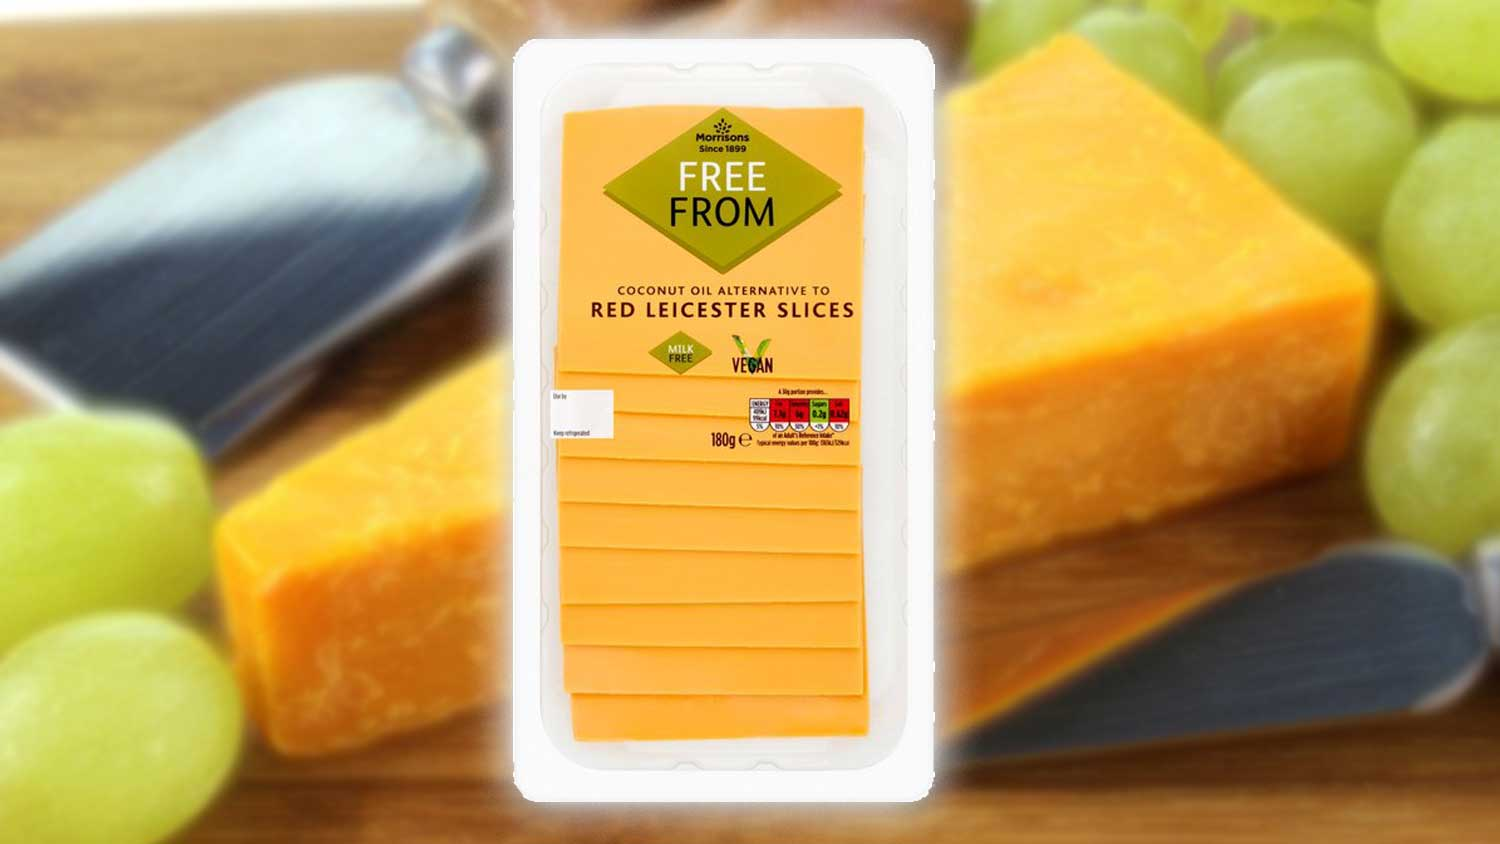 Vegan Red Leicester Cheese Slices Just Arrived at Morrisons